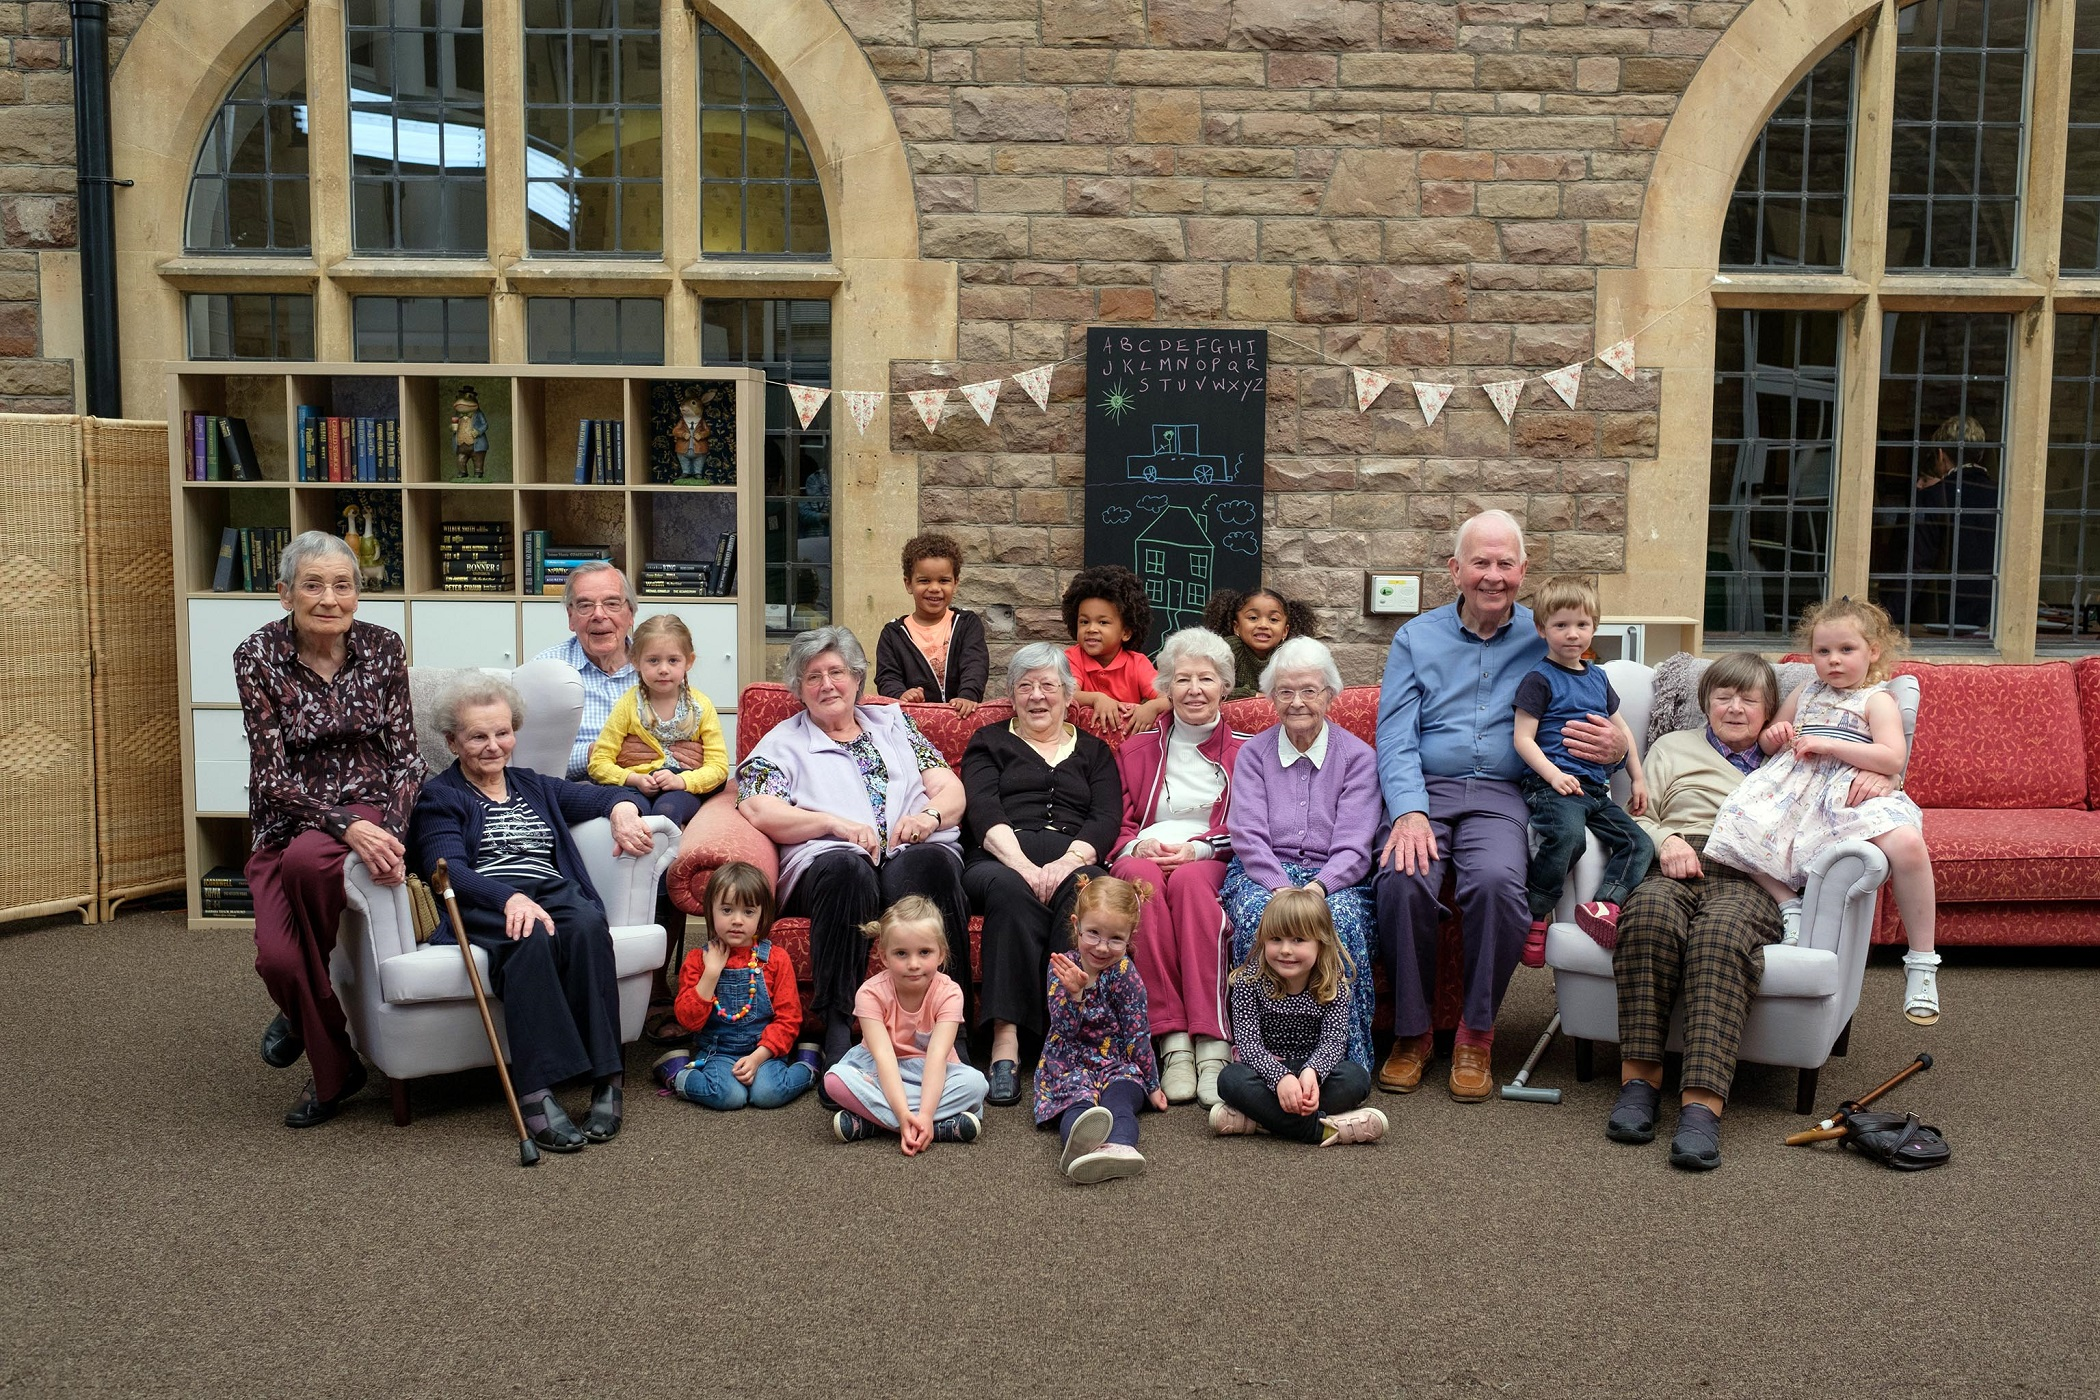 Old_Peoples_Home_For_4_Year_Olds_Group_1400.jpg (3)